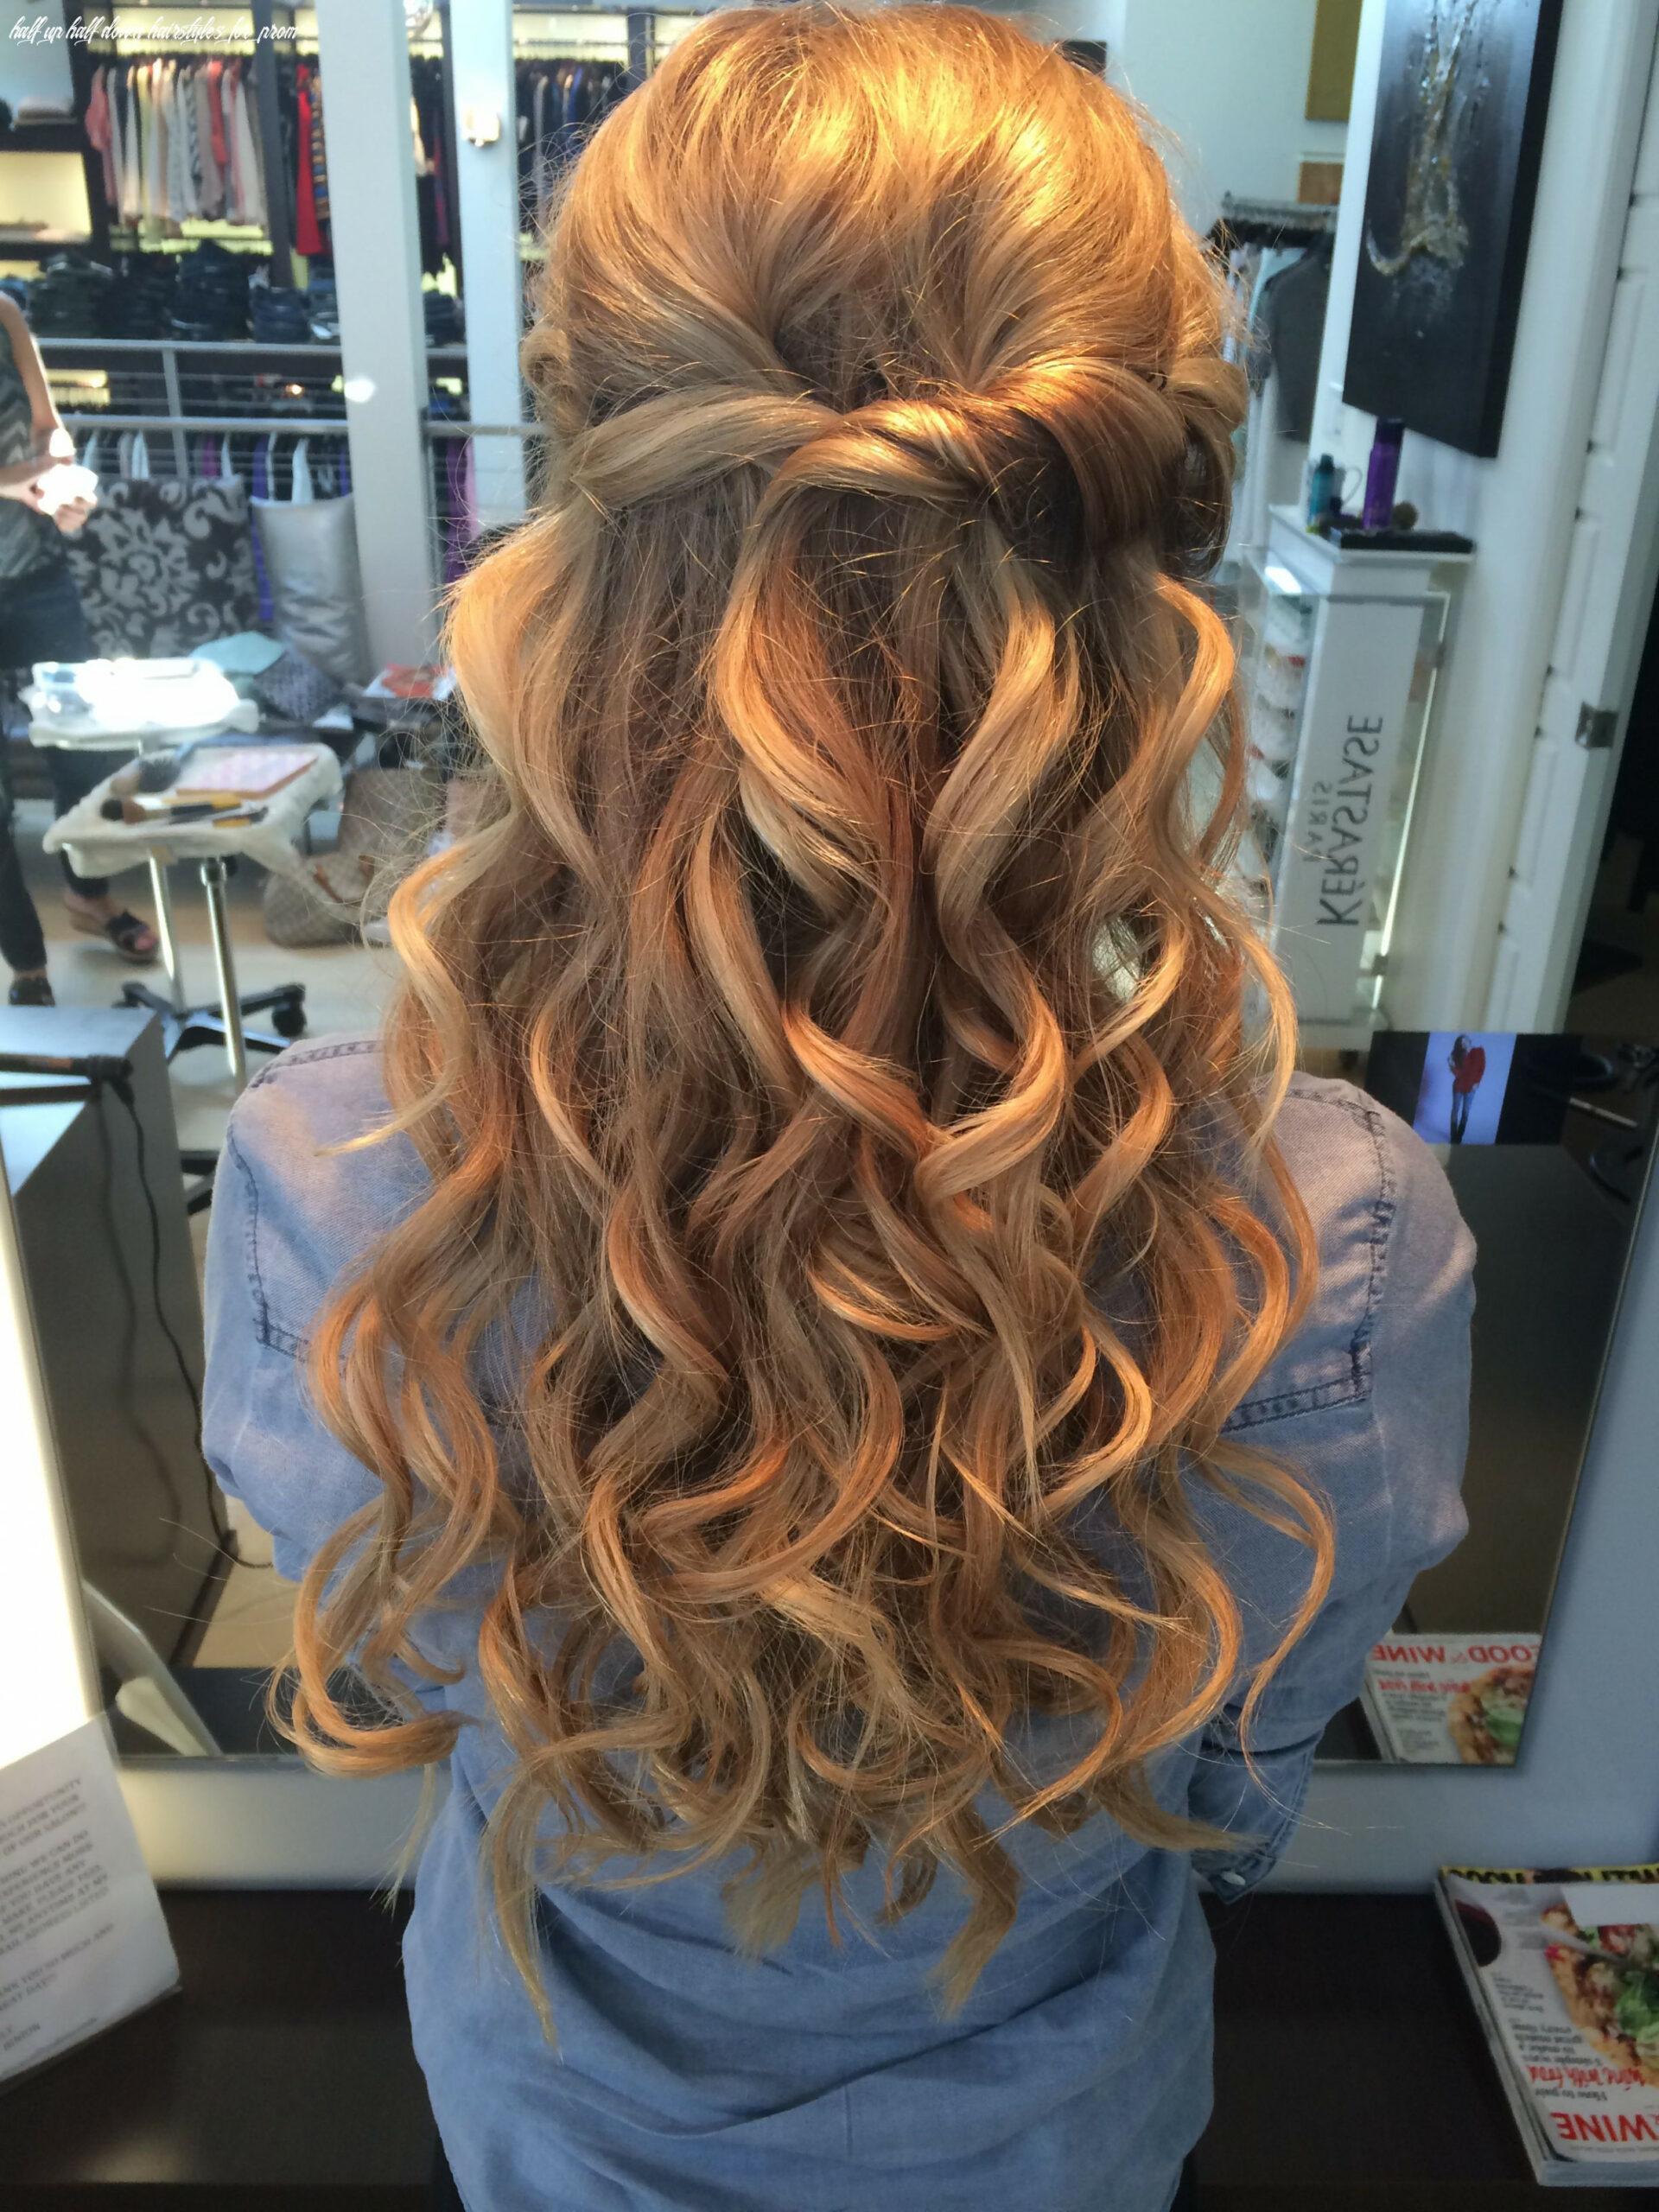 Prom half up/ half down hair | hair styles, prom hairstyles for